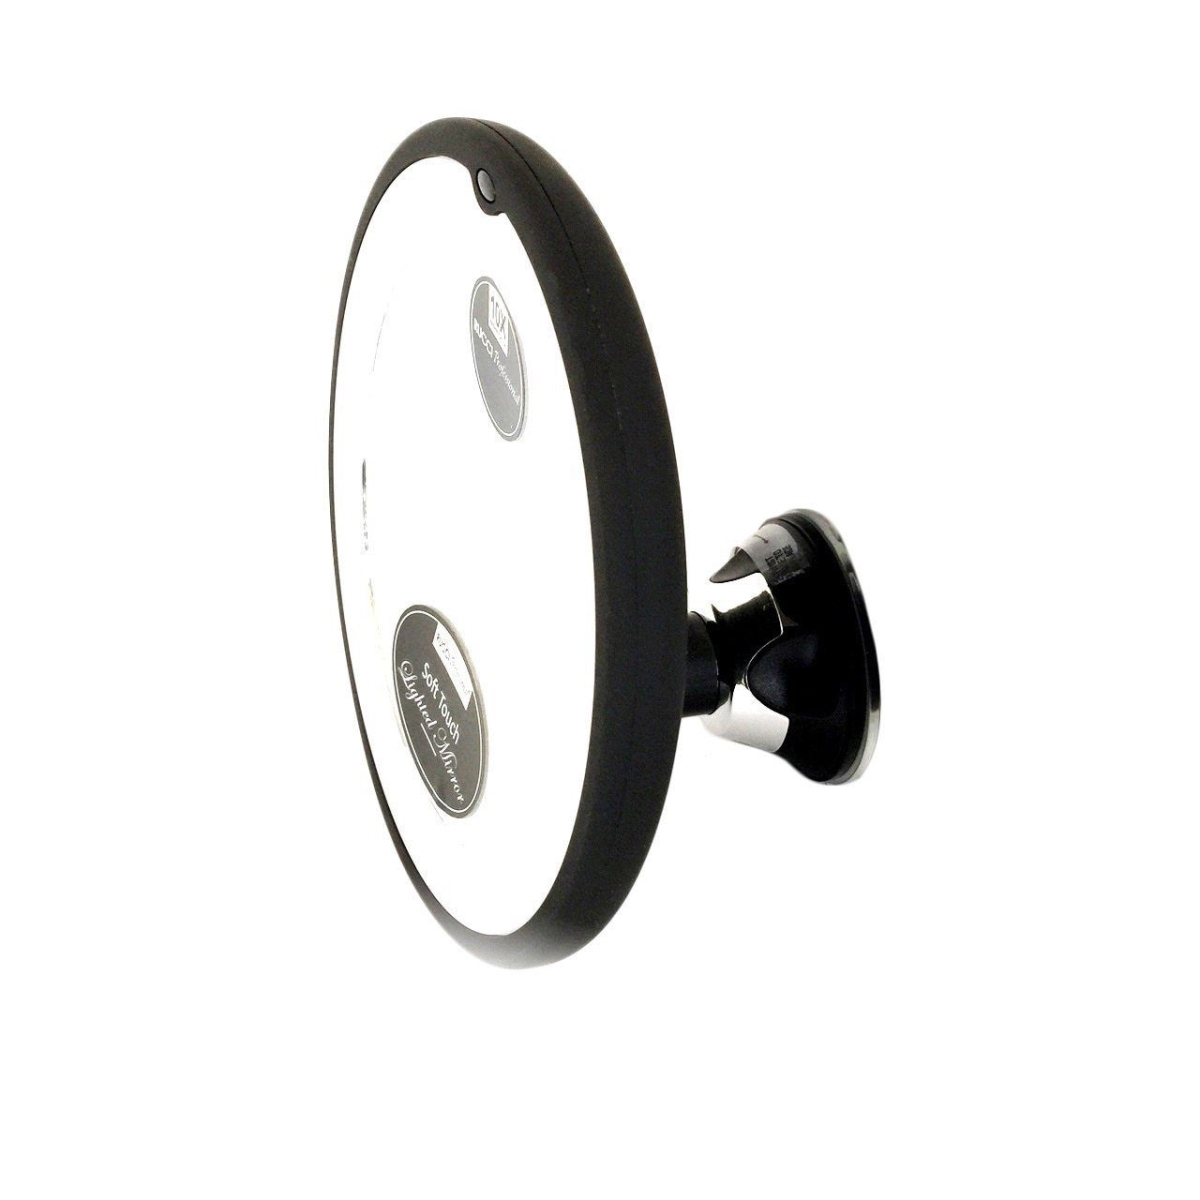 Rucci M973 Suction Mount Led Light Mirror